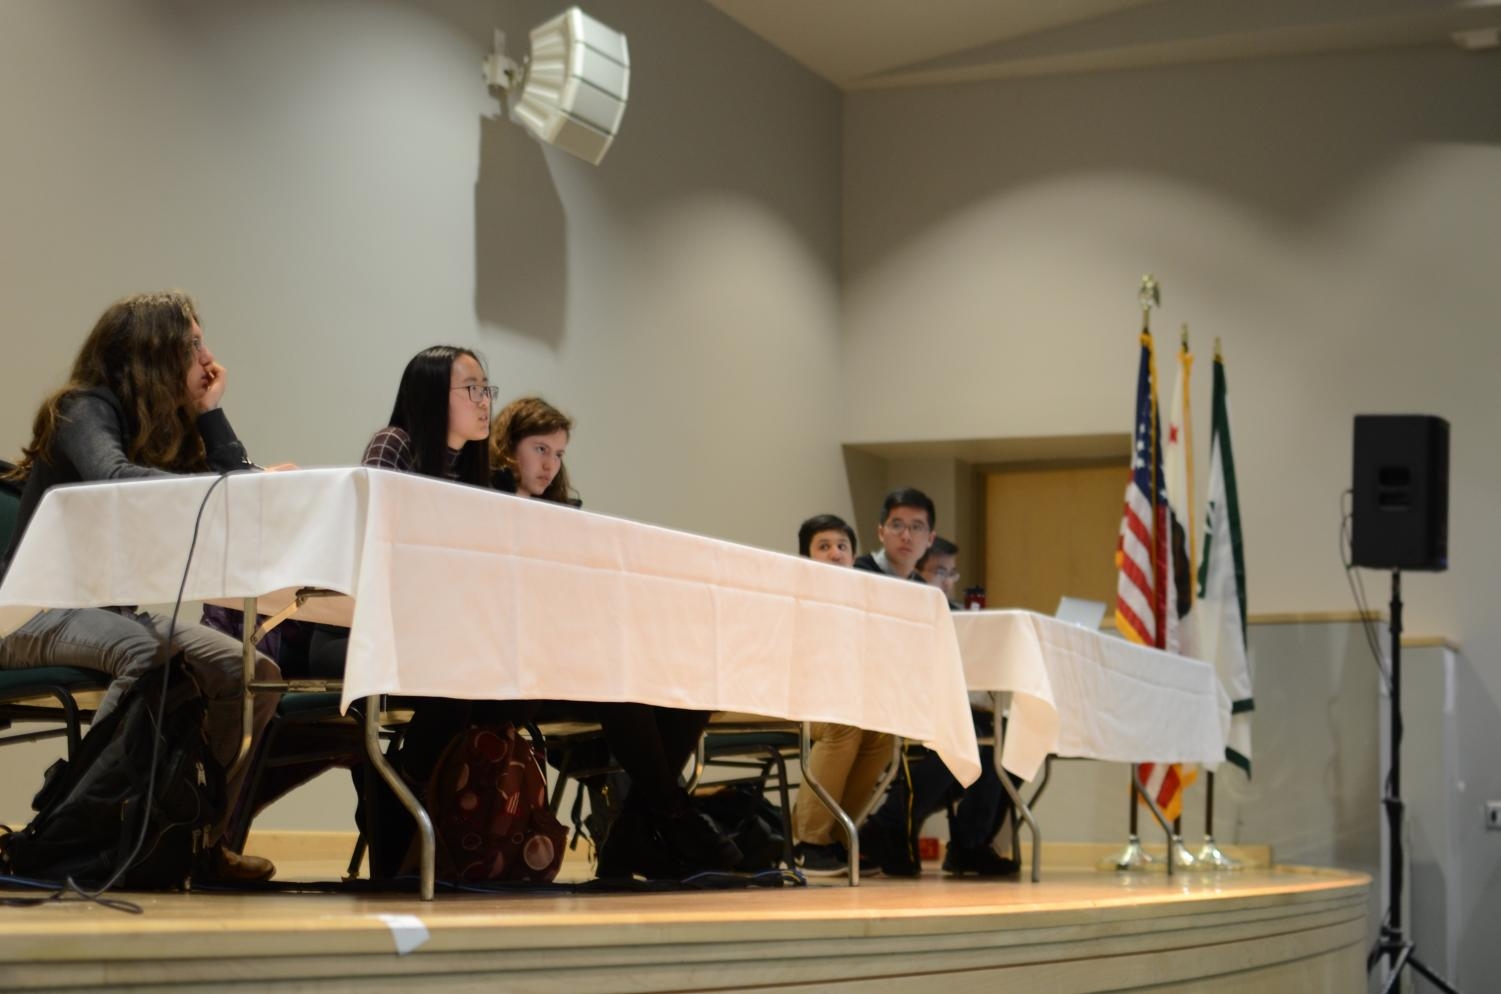 Gun debate participants Andy Semenza (12), Serena Lu (12), Sophia Gottfried (9), Sachin Shah (10), Edgar Lin (12) and Jason Huang (11) take audience questions about their speeches. Today's event in Nichols Auditorium was moderated by Aliesa Bahri (12), Dolan Dworak (12), Sahana Srinivasan (12) and Jai Bahri (10).